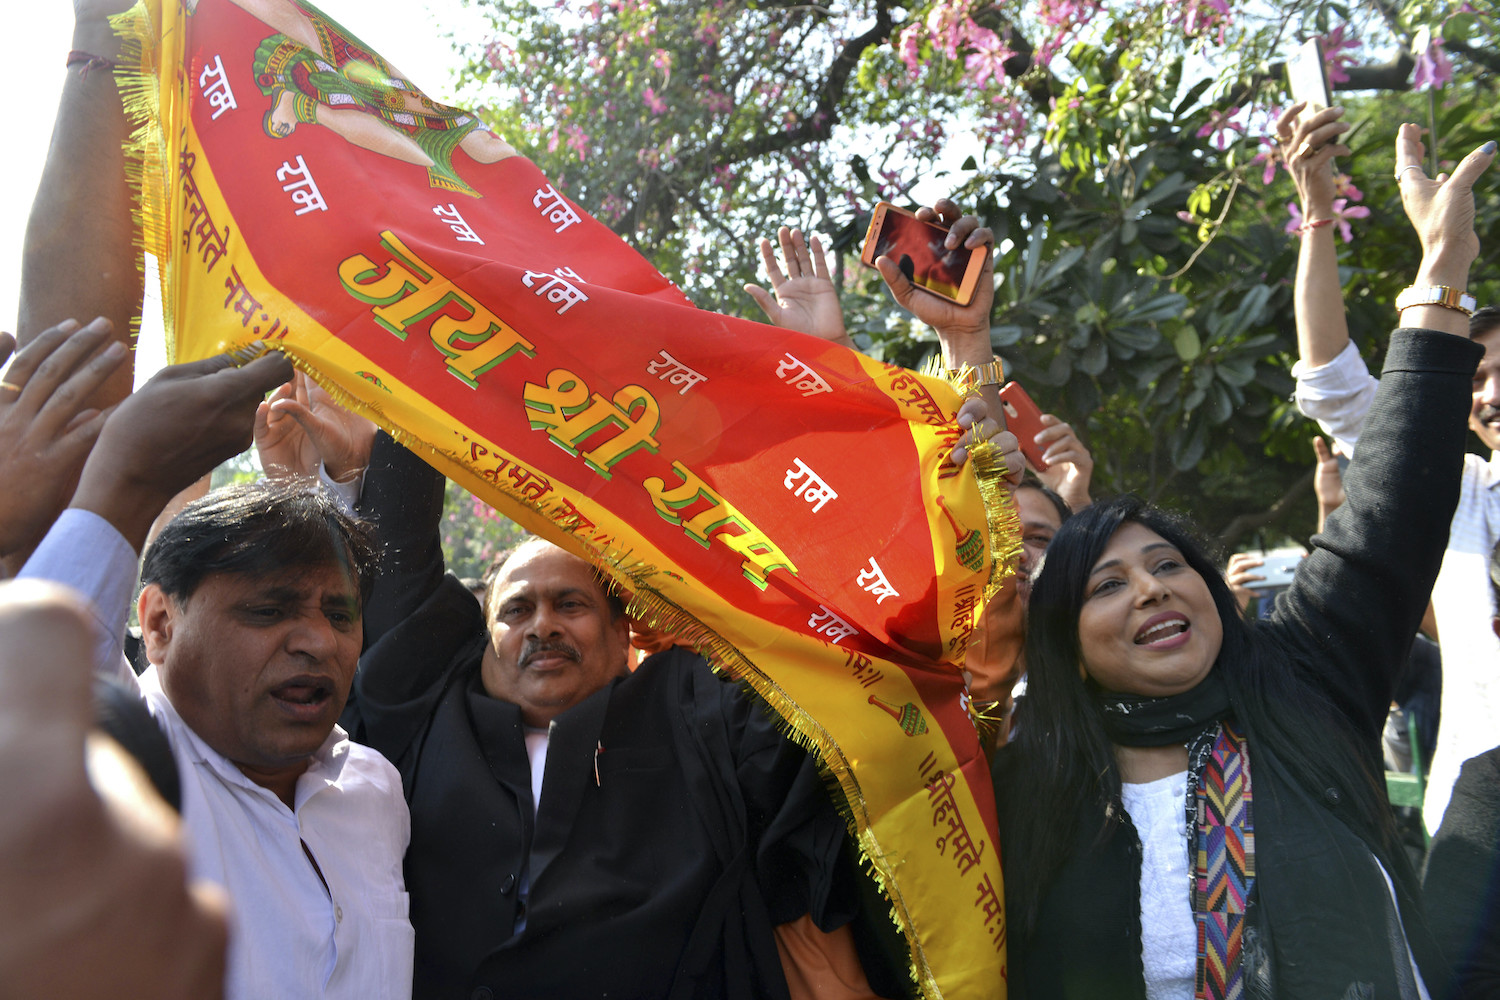 """People wave a flag that reads """"Glory to Lord Ram"""" as they celebrate the Ayodhya ruling outride the Supreme Court in New Delhi on Saturday. (AP Photo)"""